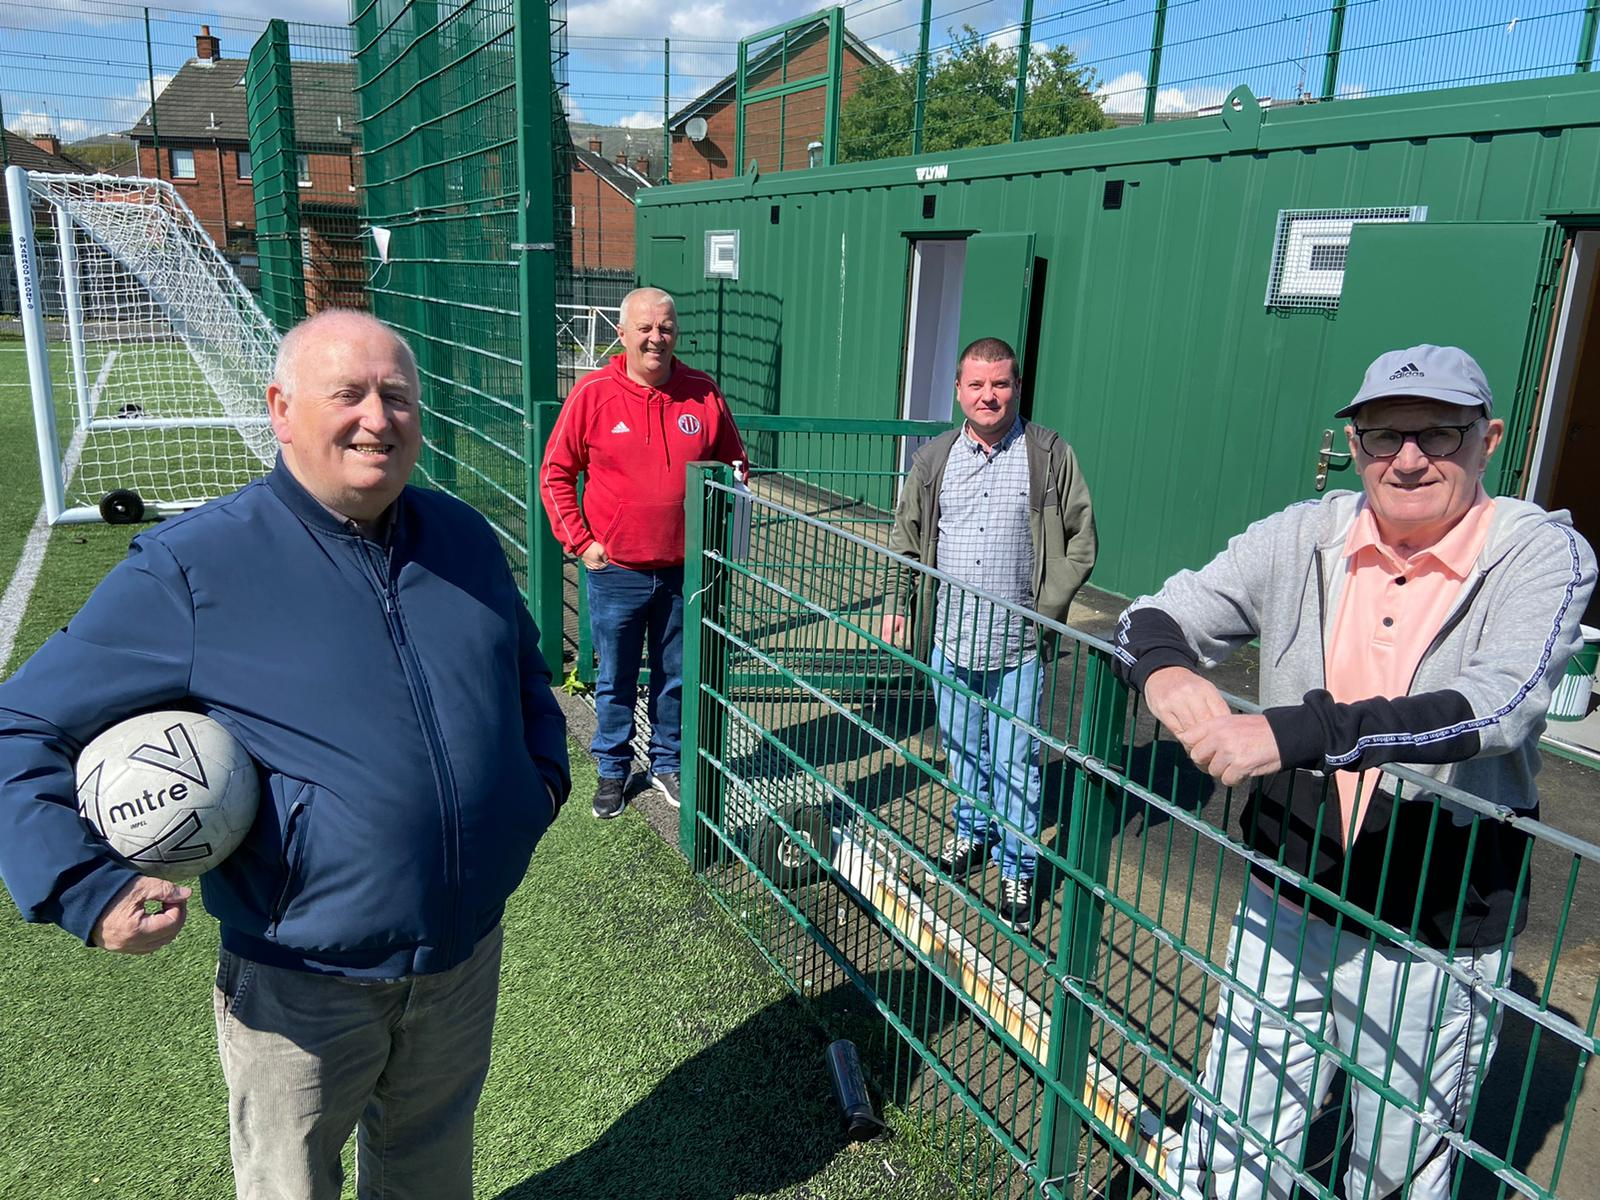 KICK-OFF: Fra McCann MLA, Jim Cahill, Cllr Ciaran Beattie and George McCabe at the opening of the new changing facilities.